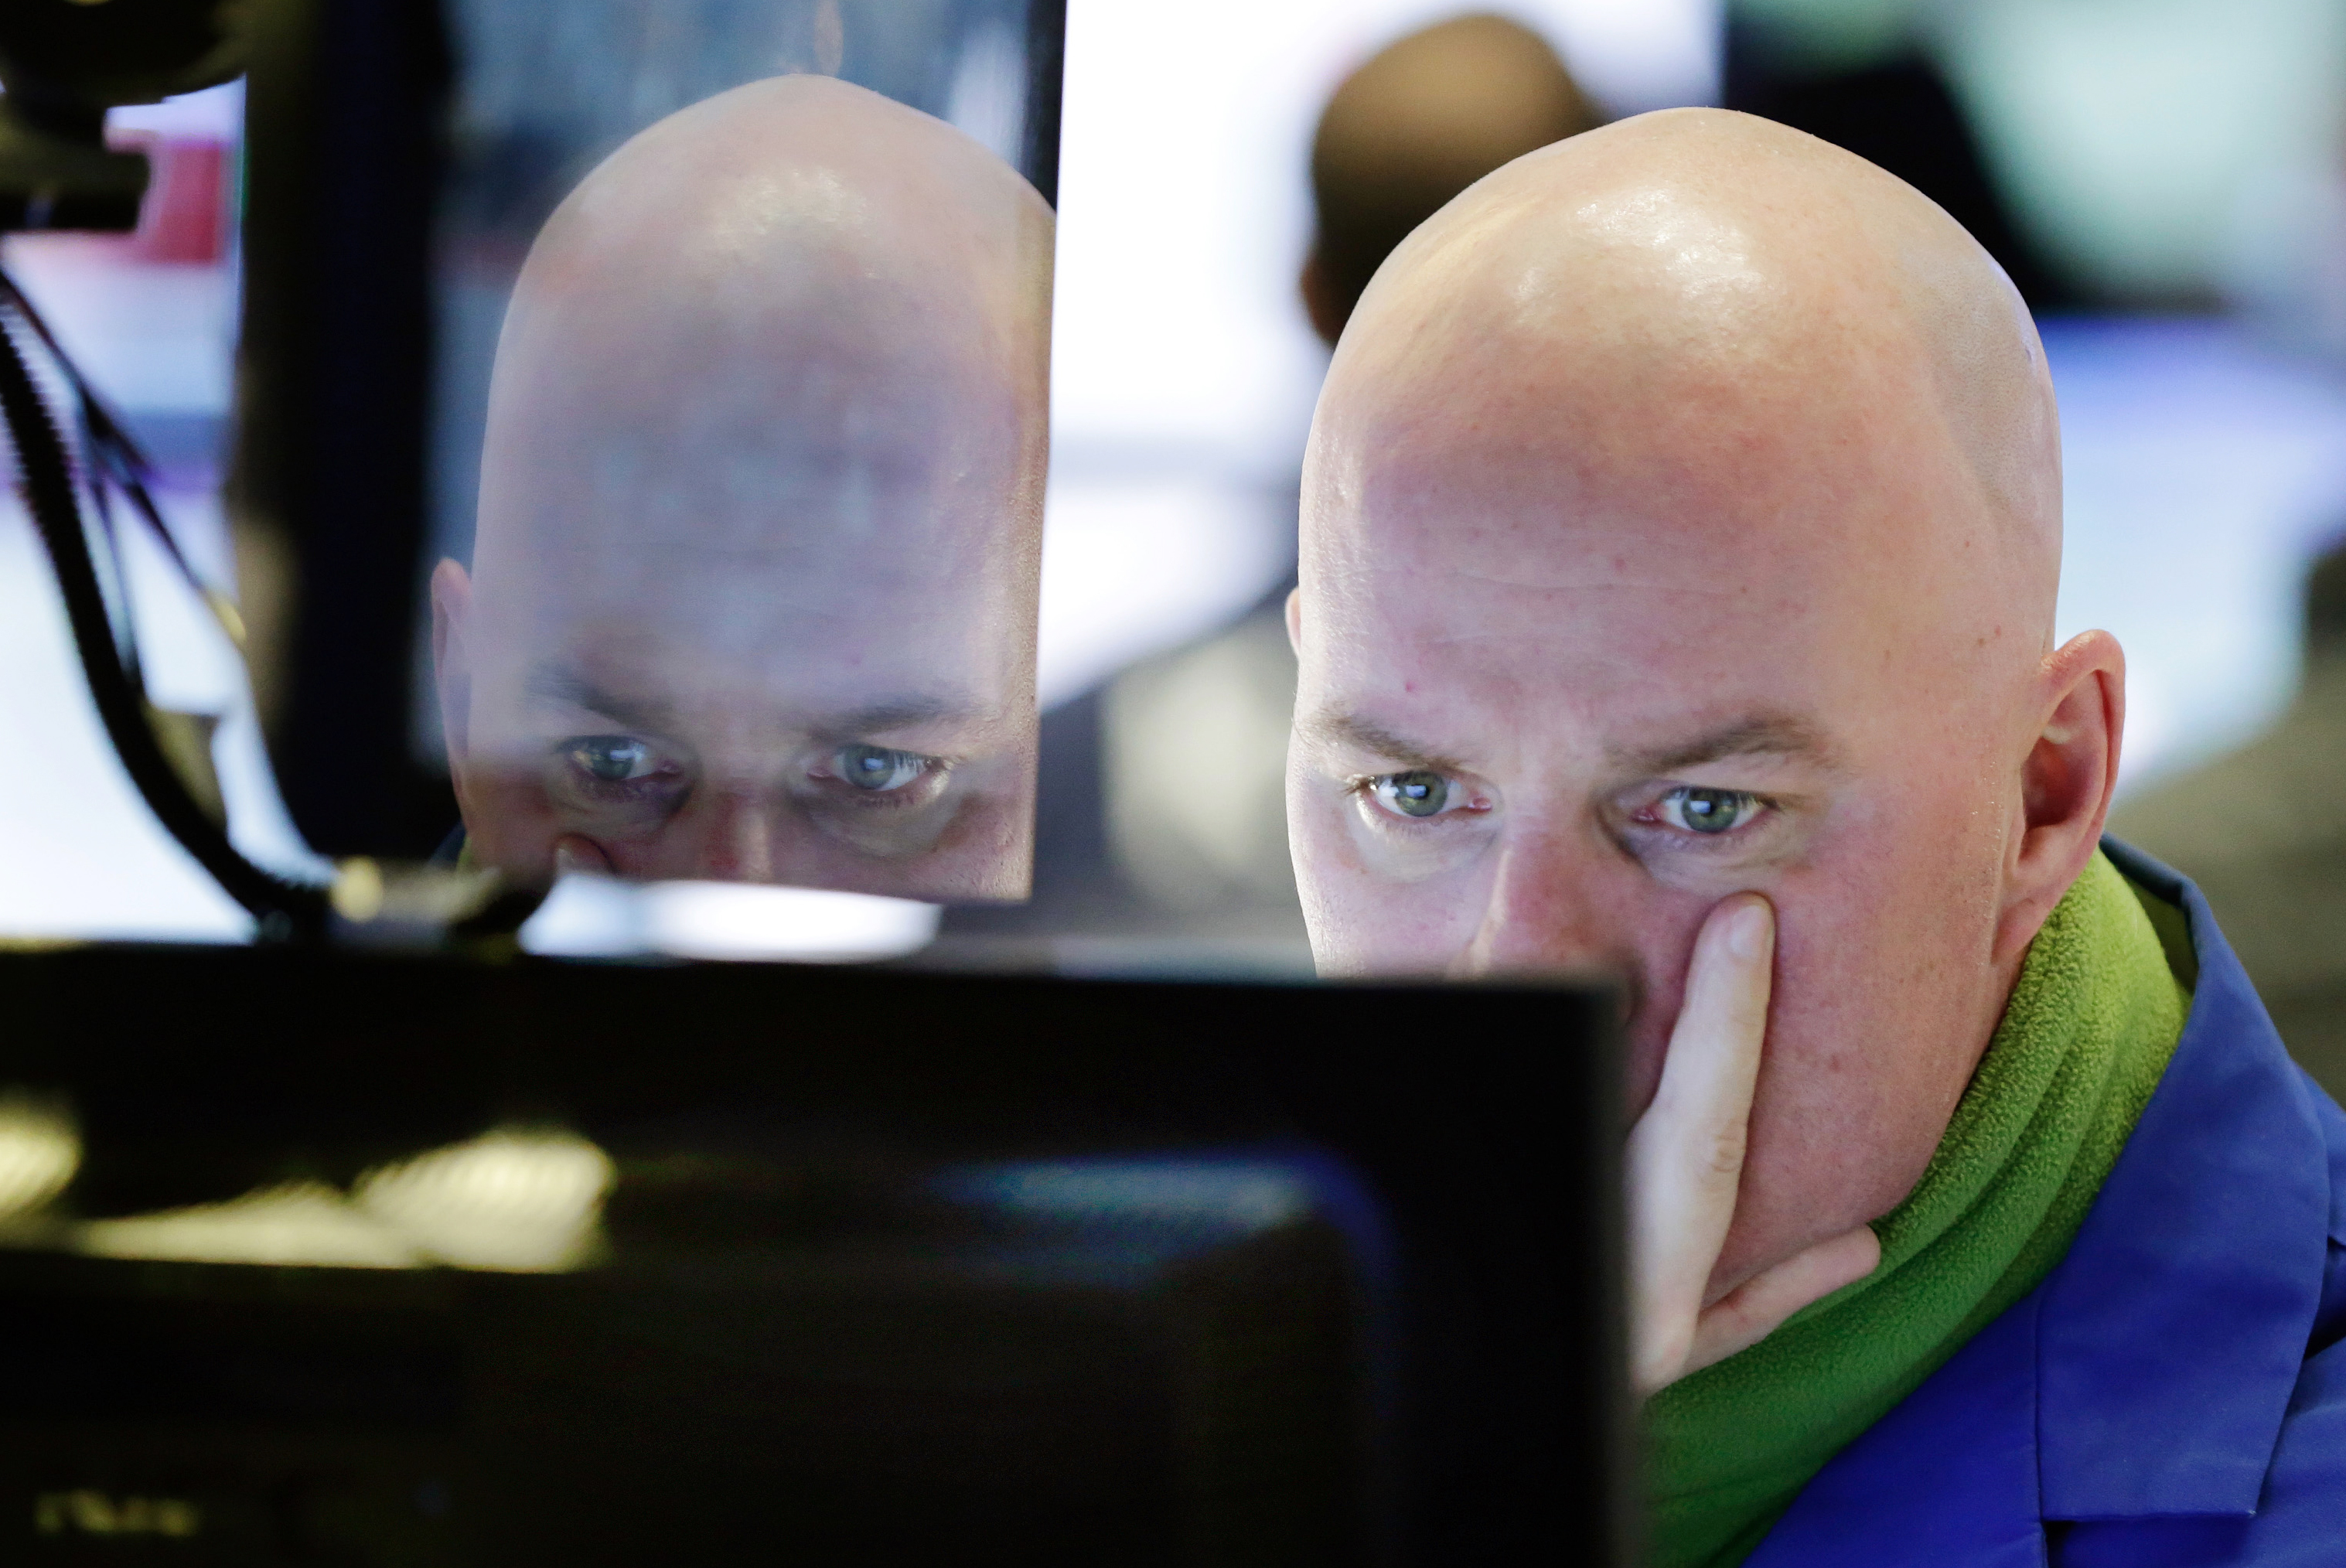 US Stocks Slide Again as China Woes Lead to Global Selling